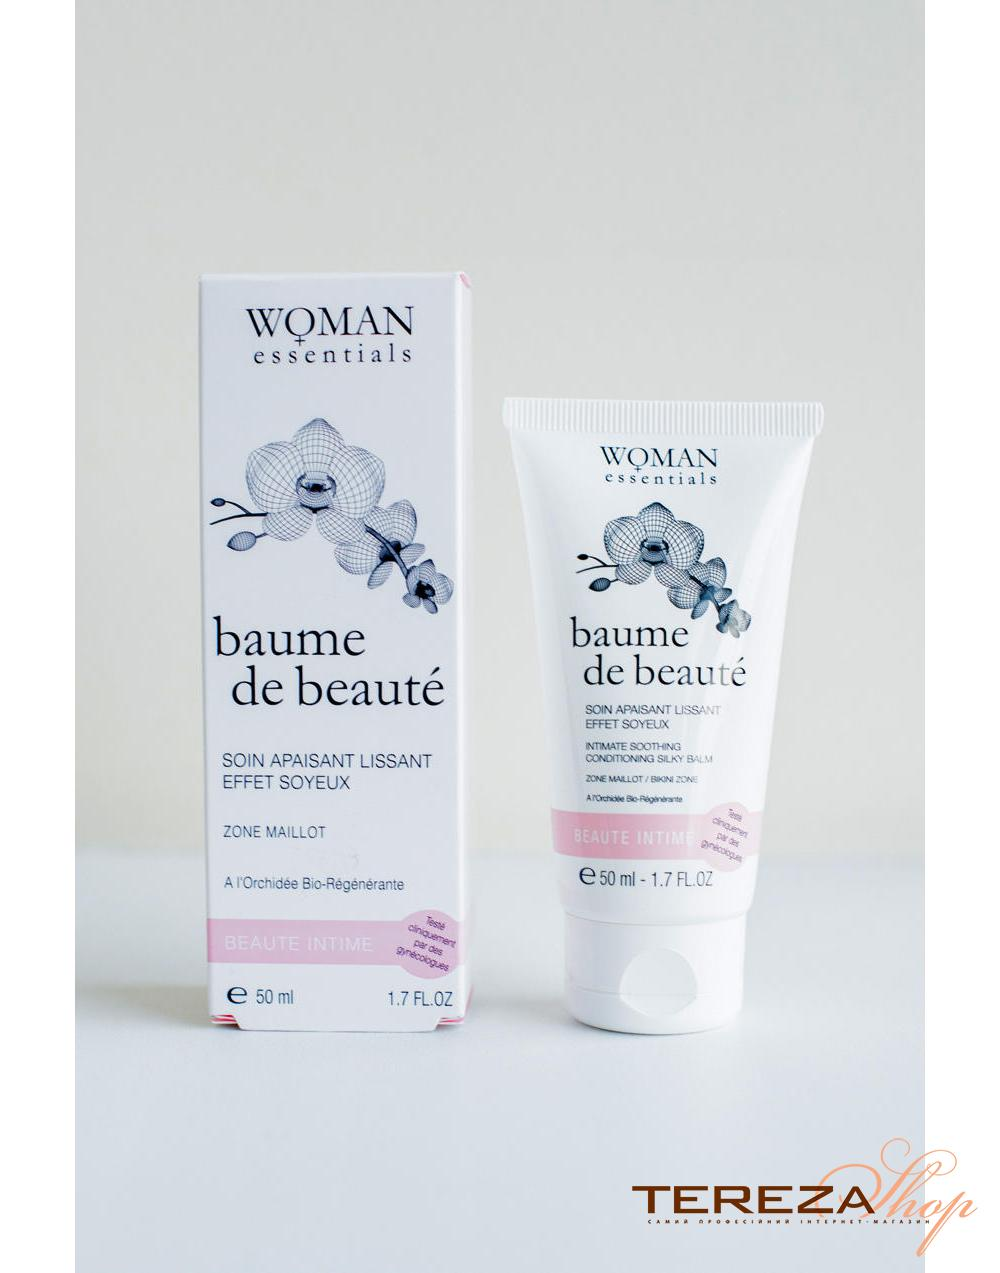 BAUME DE BEAUTE WOMAN ESSENTIALS | Tereza Shop